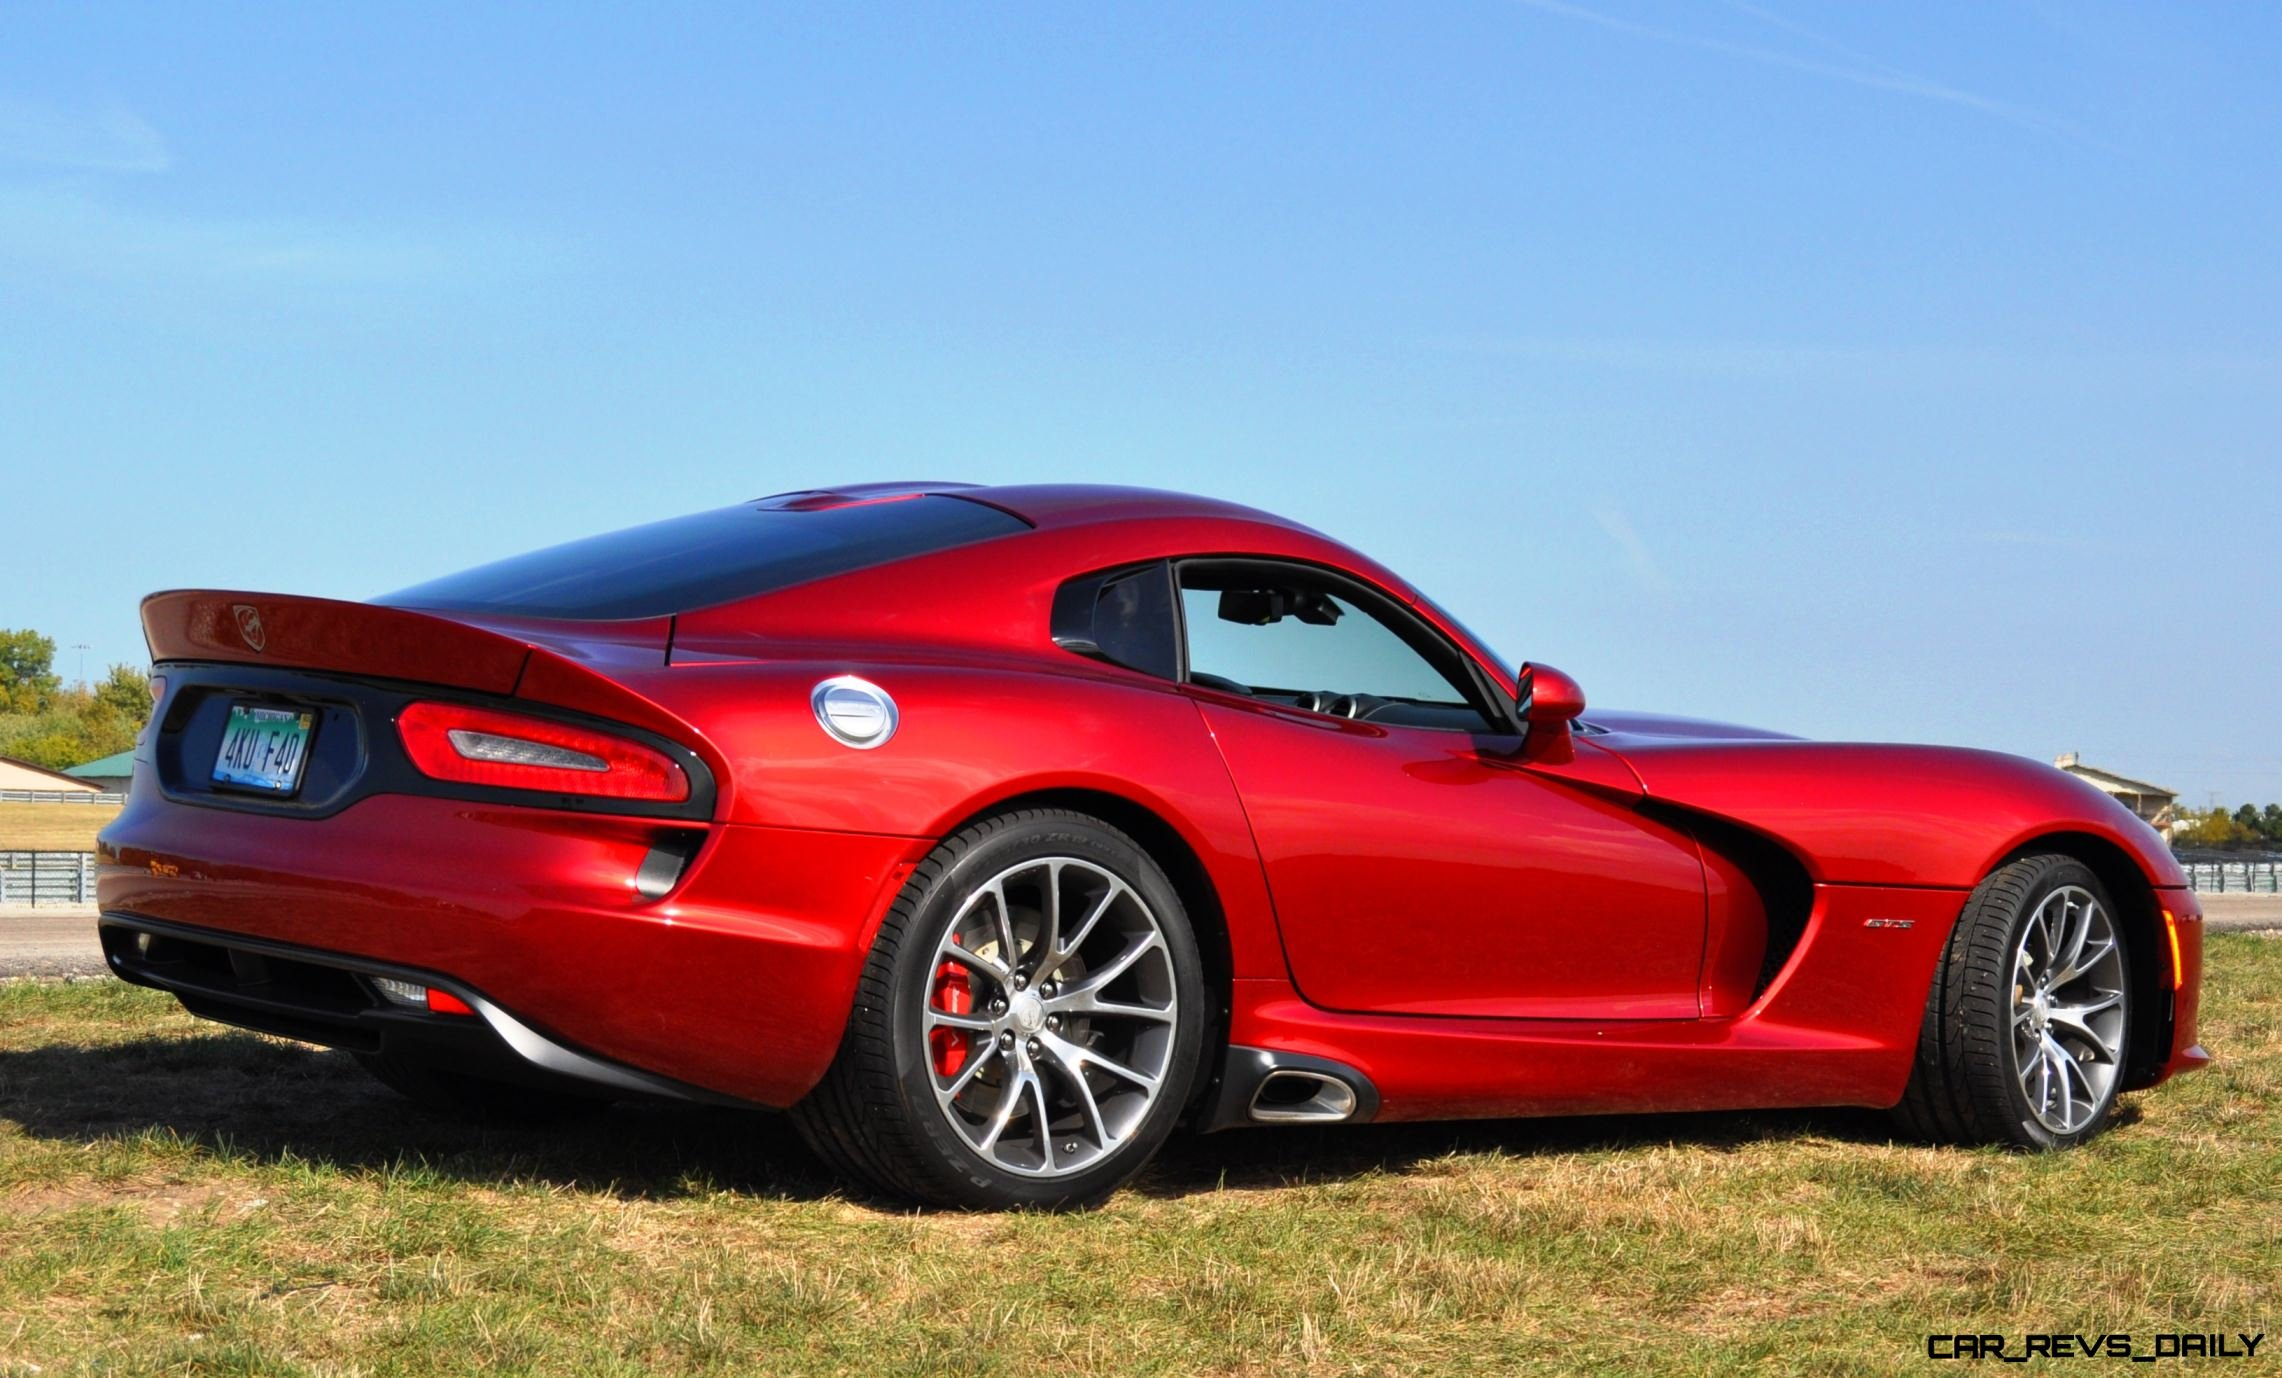 CarRevsDaily.com - 2014 SRT Viper GTS - Huge Wallpapers11